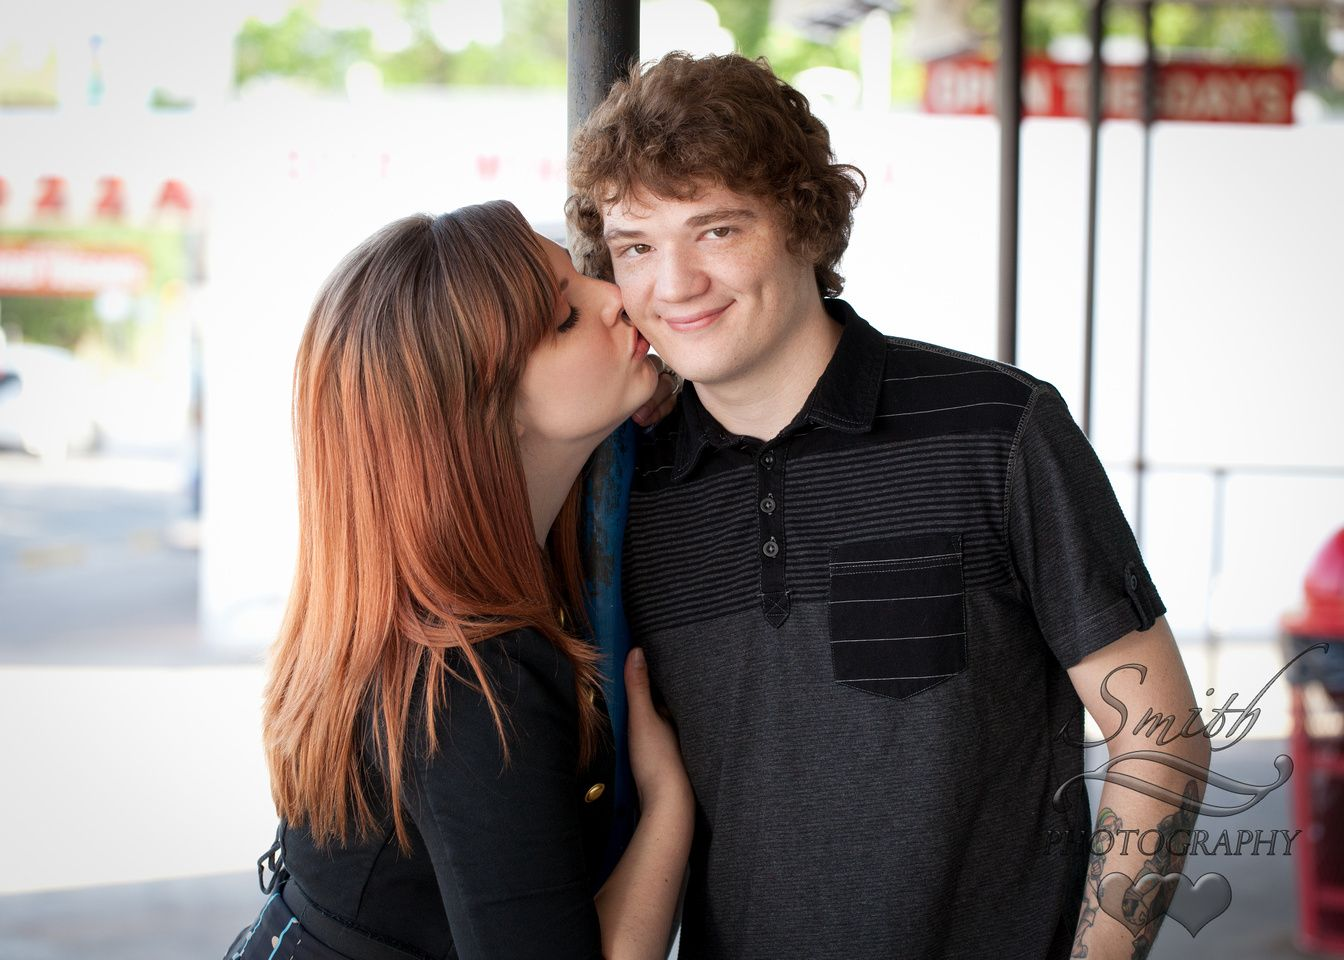 Is michael from roosterteeth dating lindsay